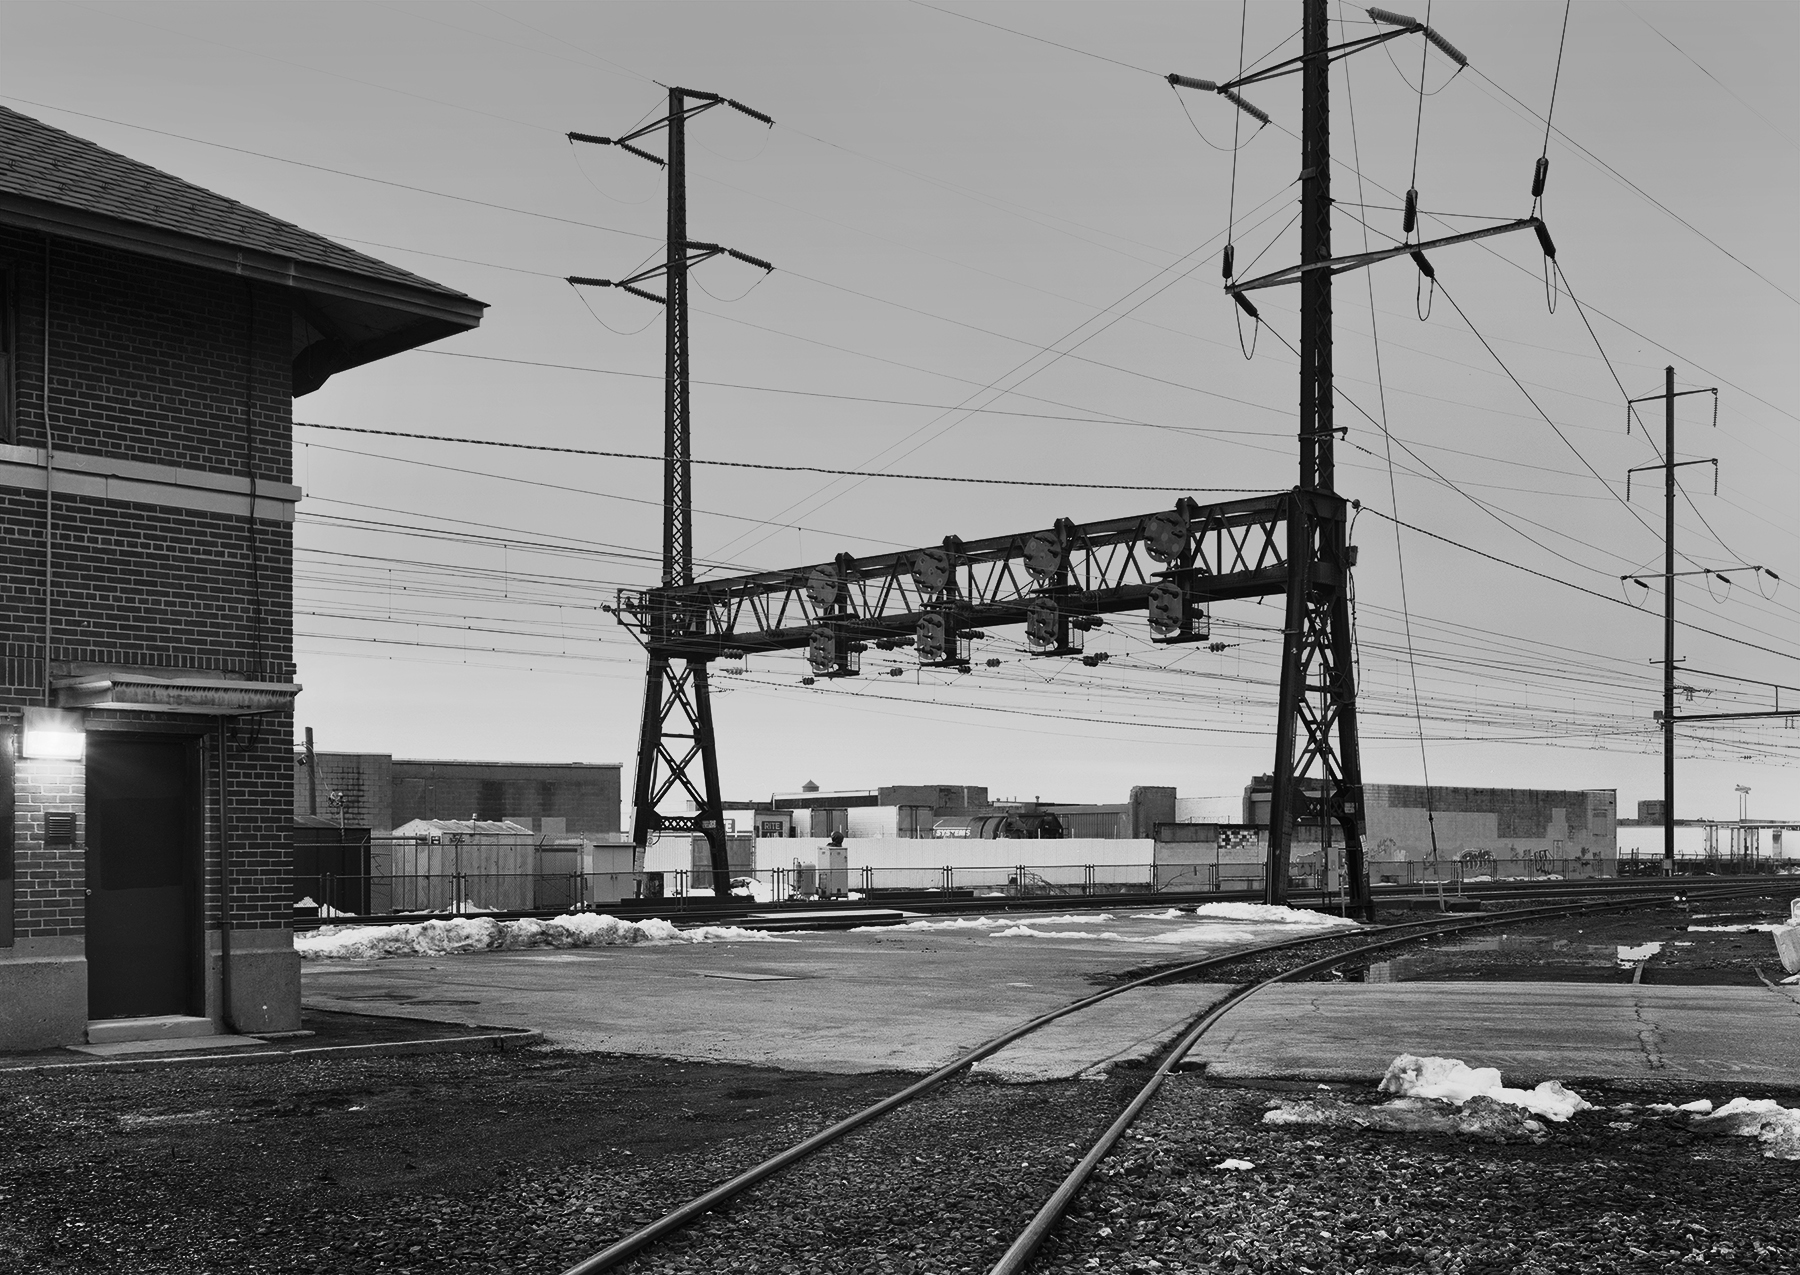 View of the westbound home signal, from the Bustleton Branch, Holmesburg section, Philadelphia, Pennsylvania. Holmesburg was an interlocking and commuter station along the main line and the location where the Bustleton Branch diverged. Countless locations alongside the railroad have a backstory, Photographs & History expands beyond the contemporary photograph to tell these stories.